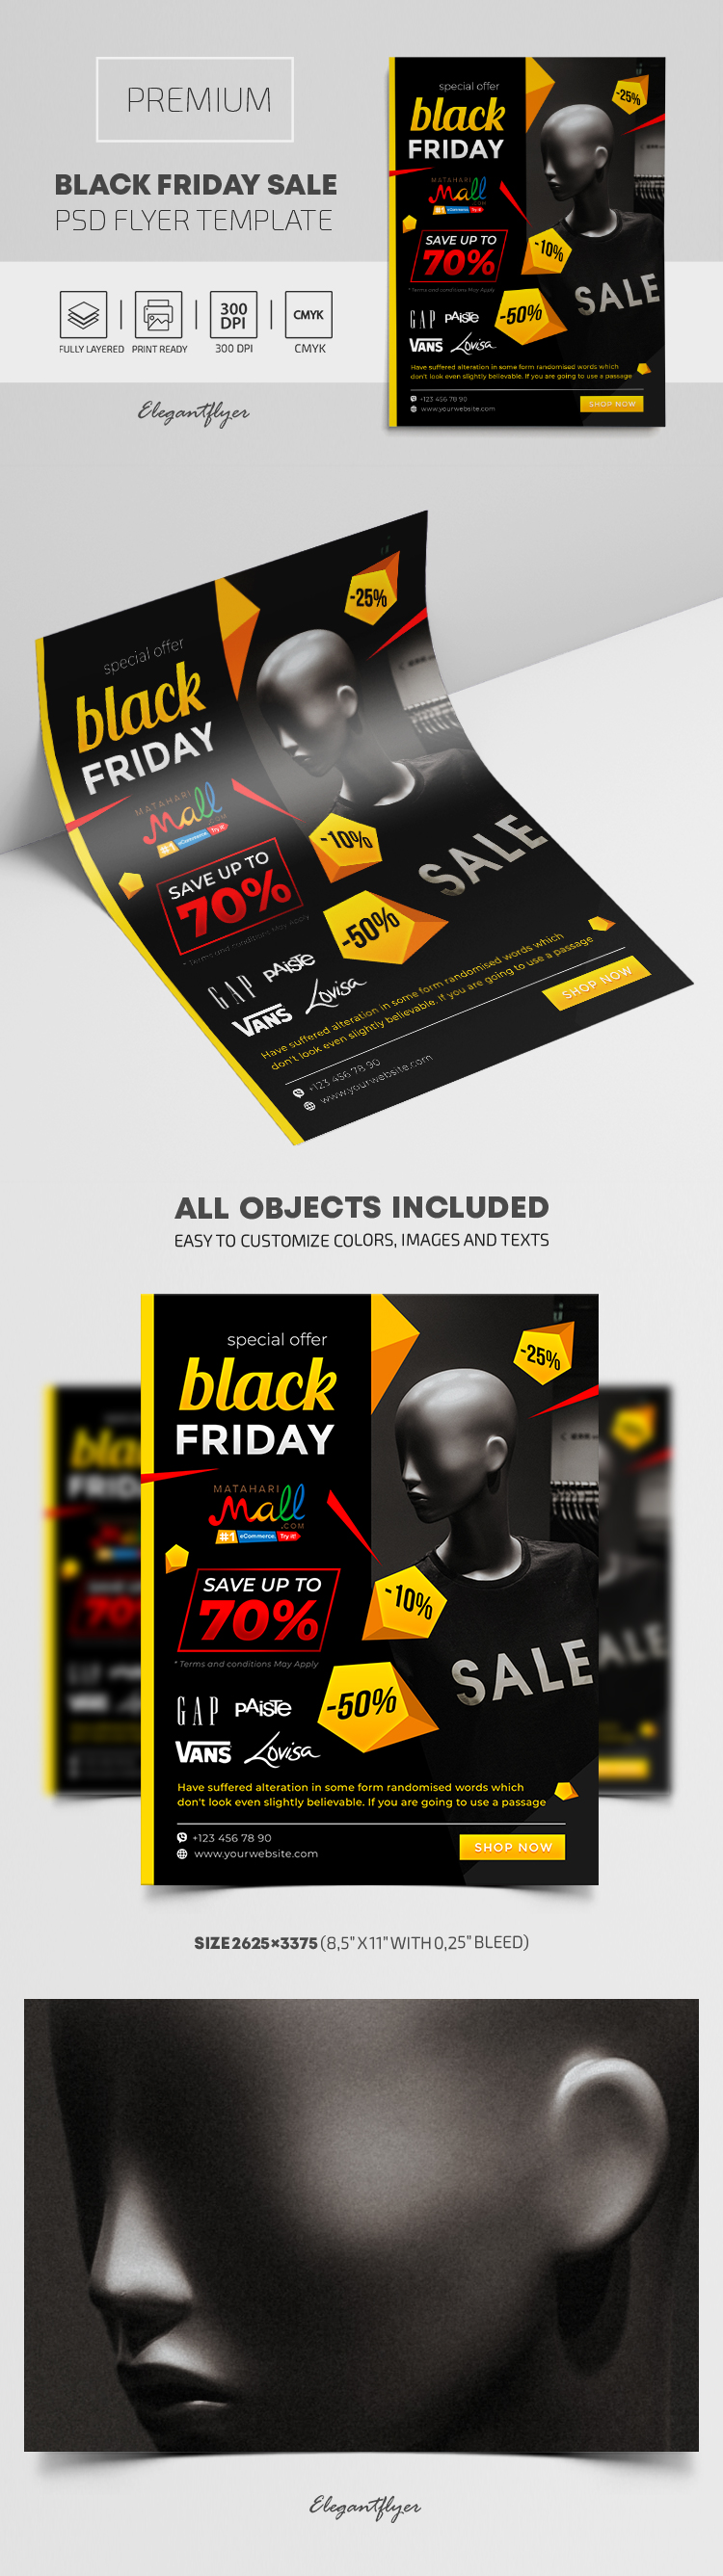 Black Friday Sales – Premium PSD Flyer Template